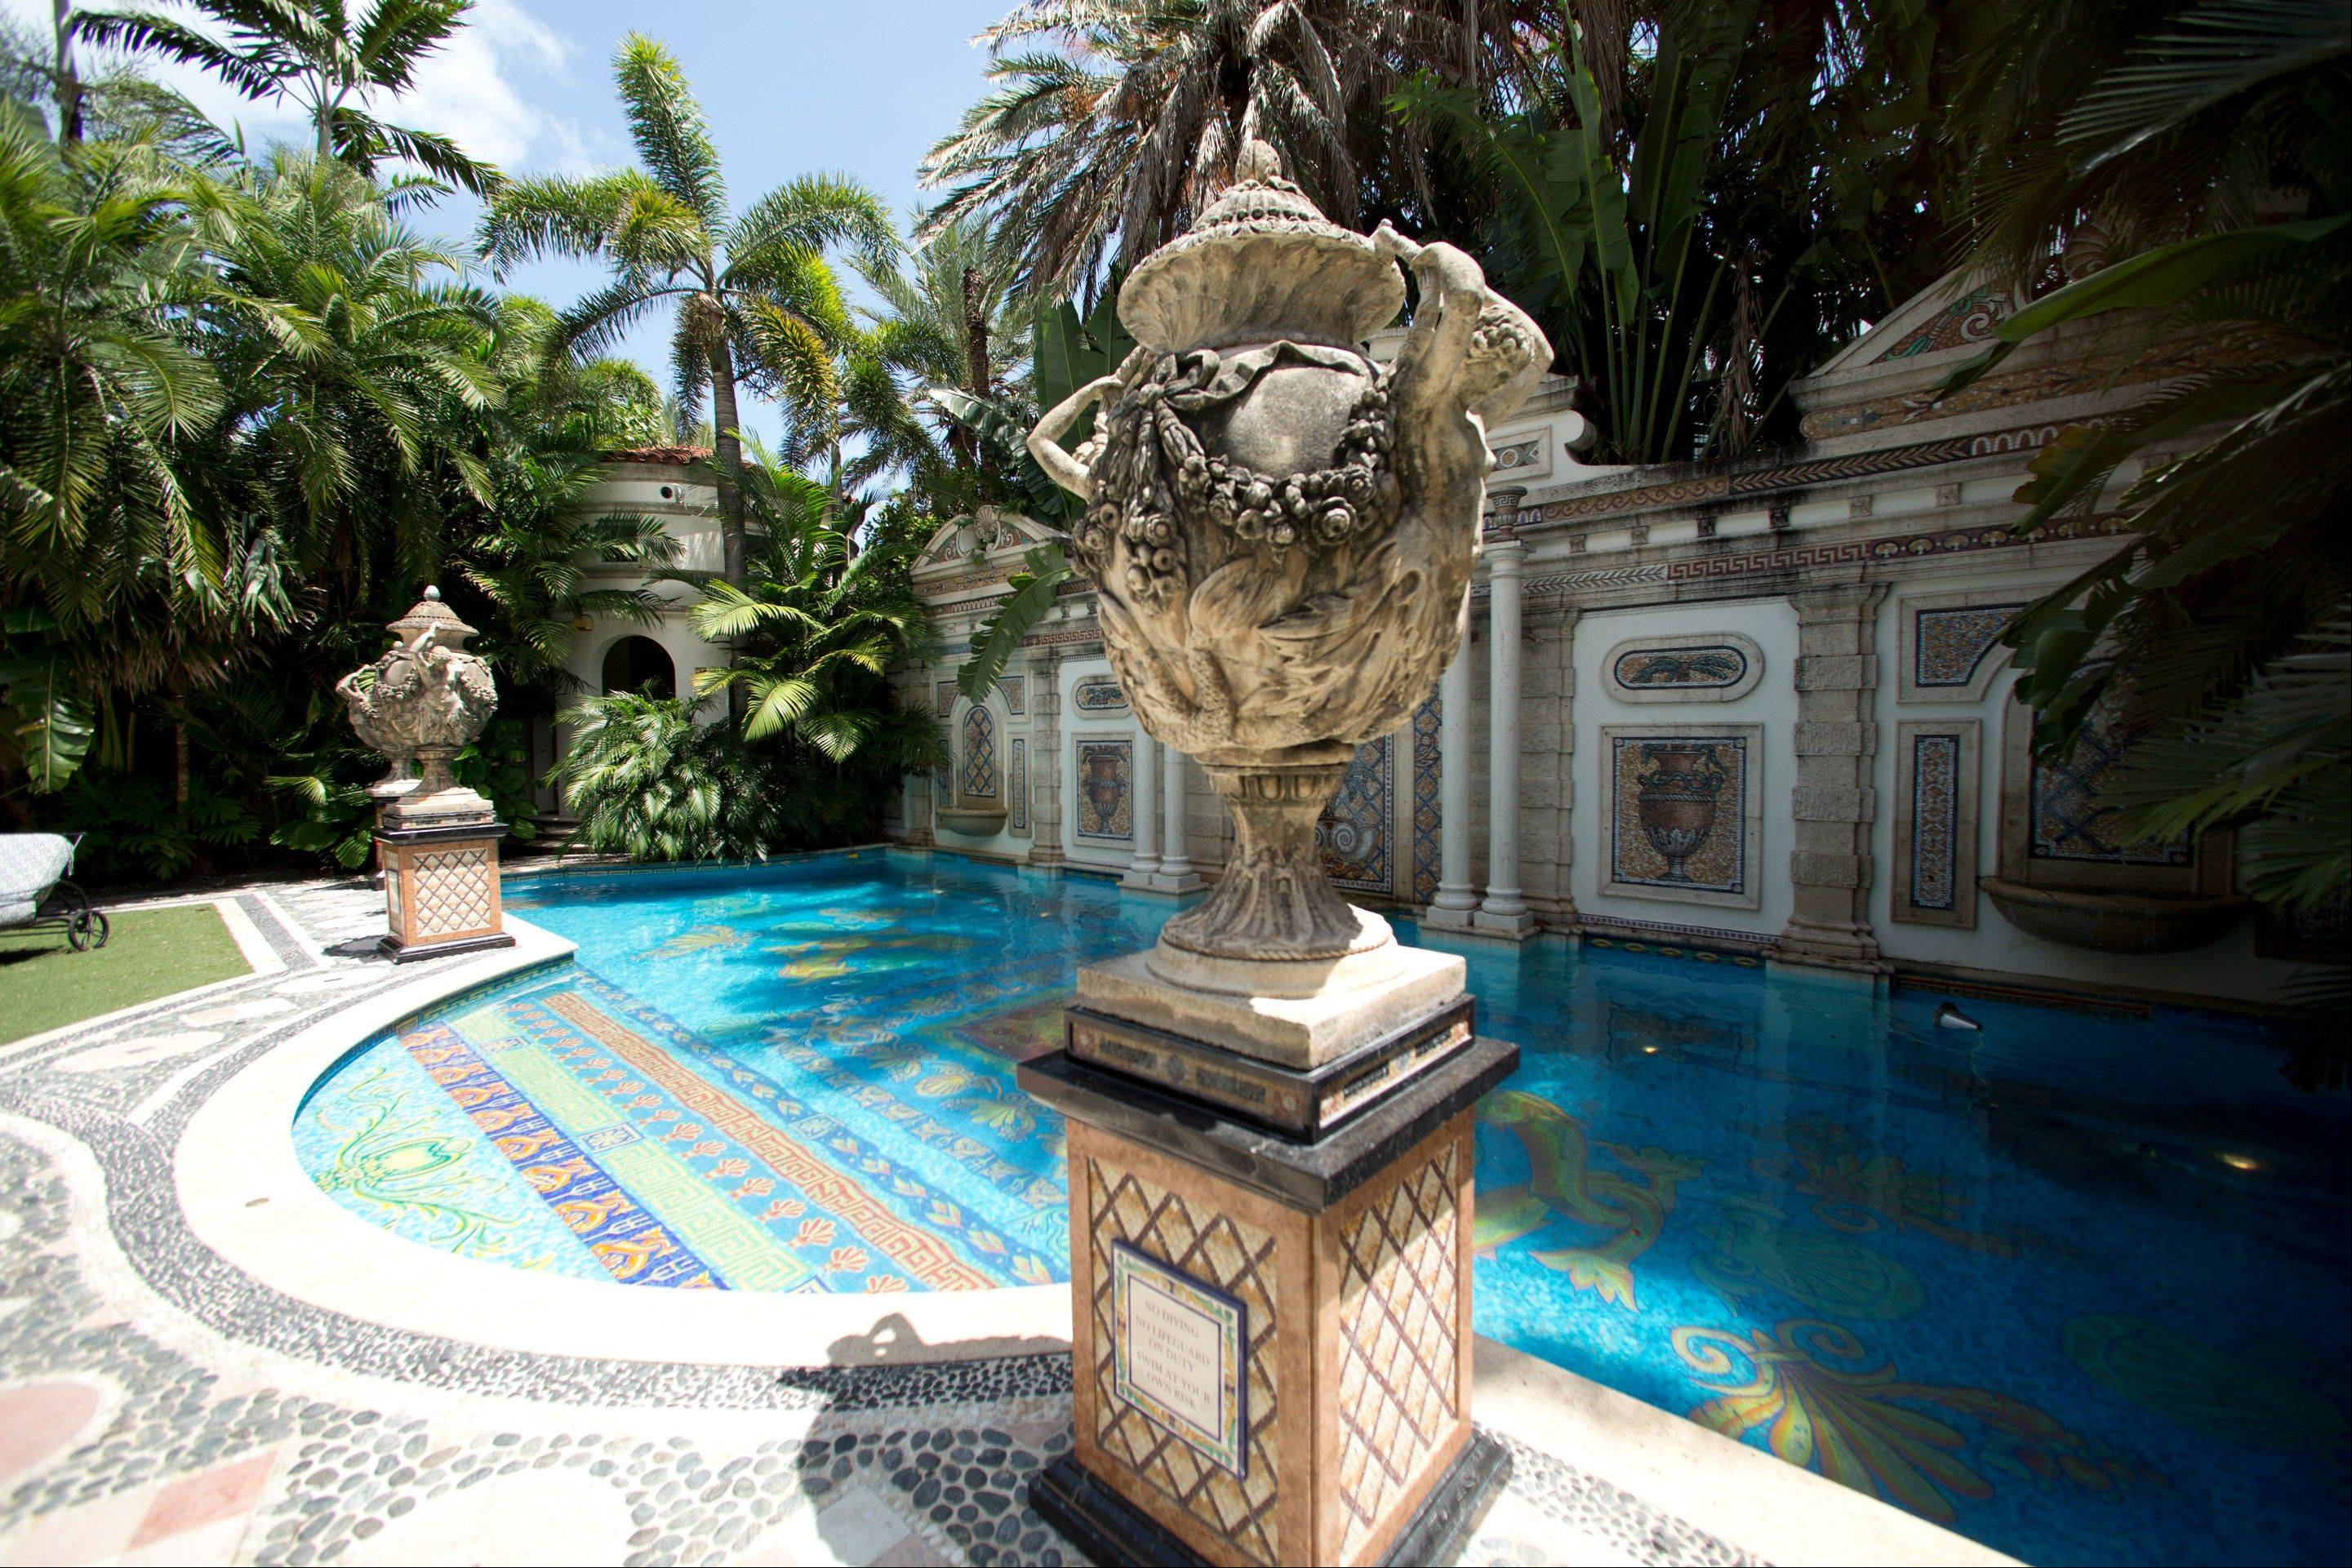 Decorative artwork stands in front of the 55 foot long swimming pool at the Versace mansion on Miami Beach, Fla.